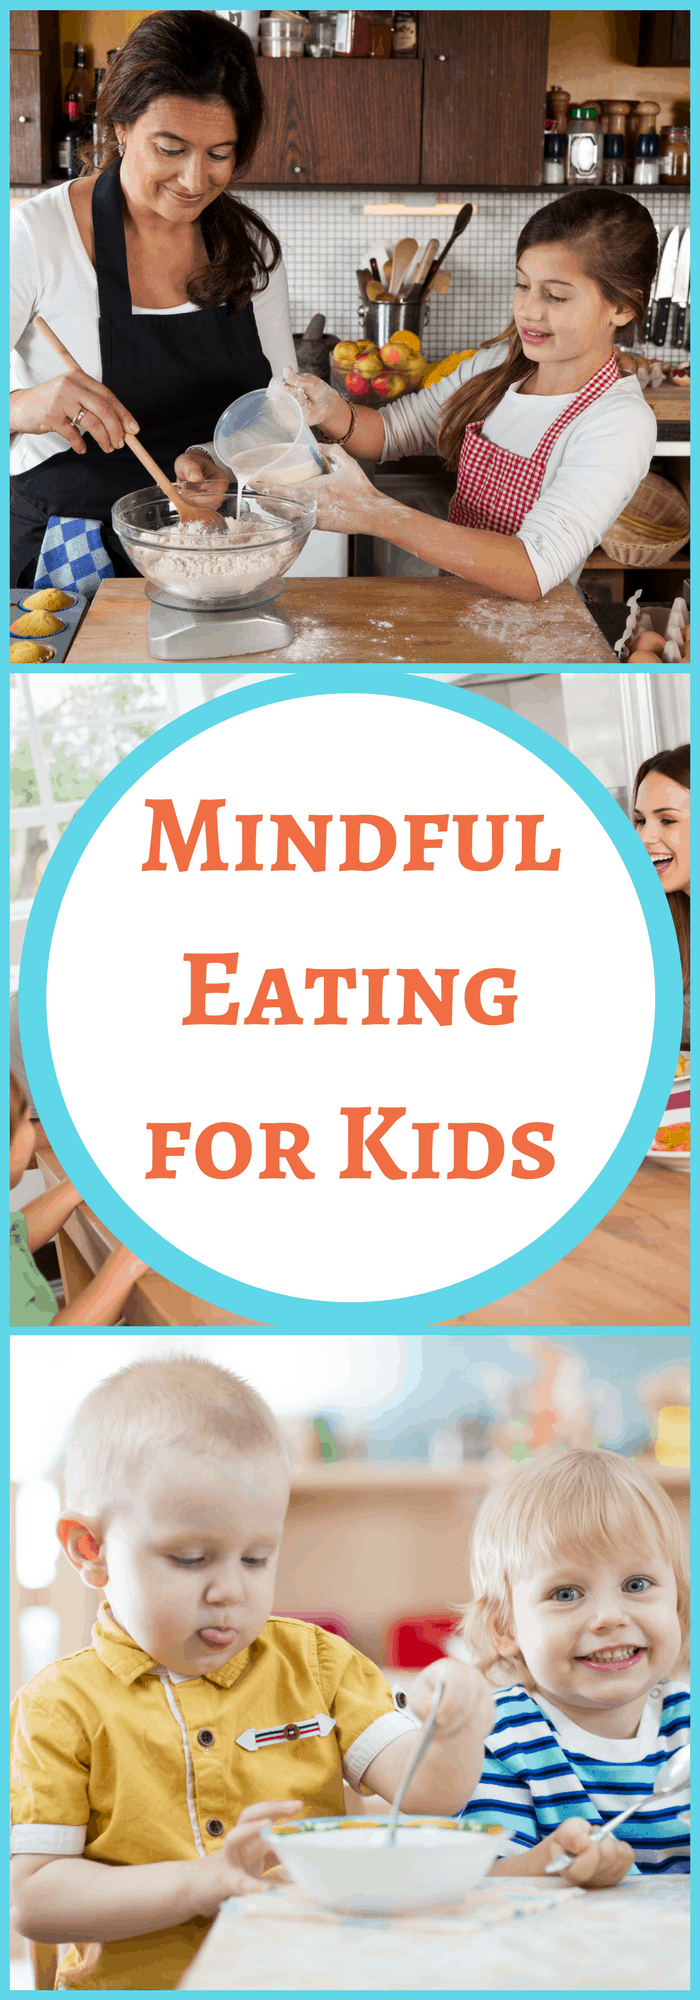 Mindful Eating for Kids